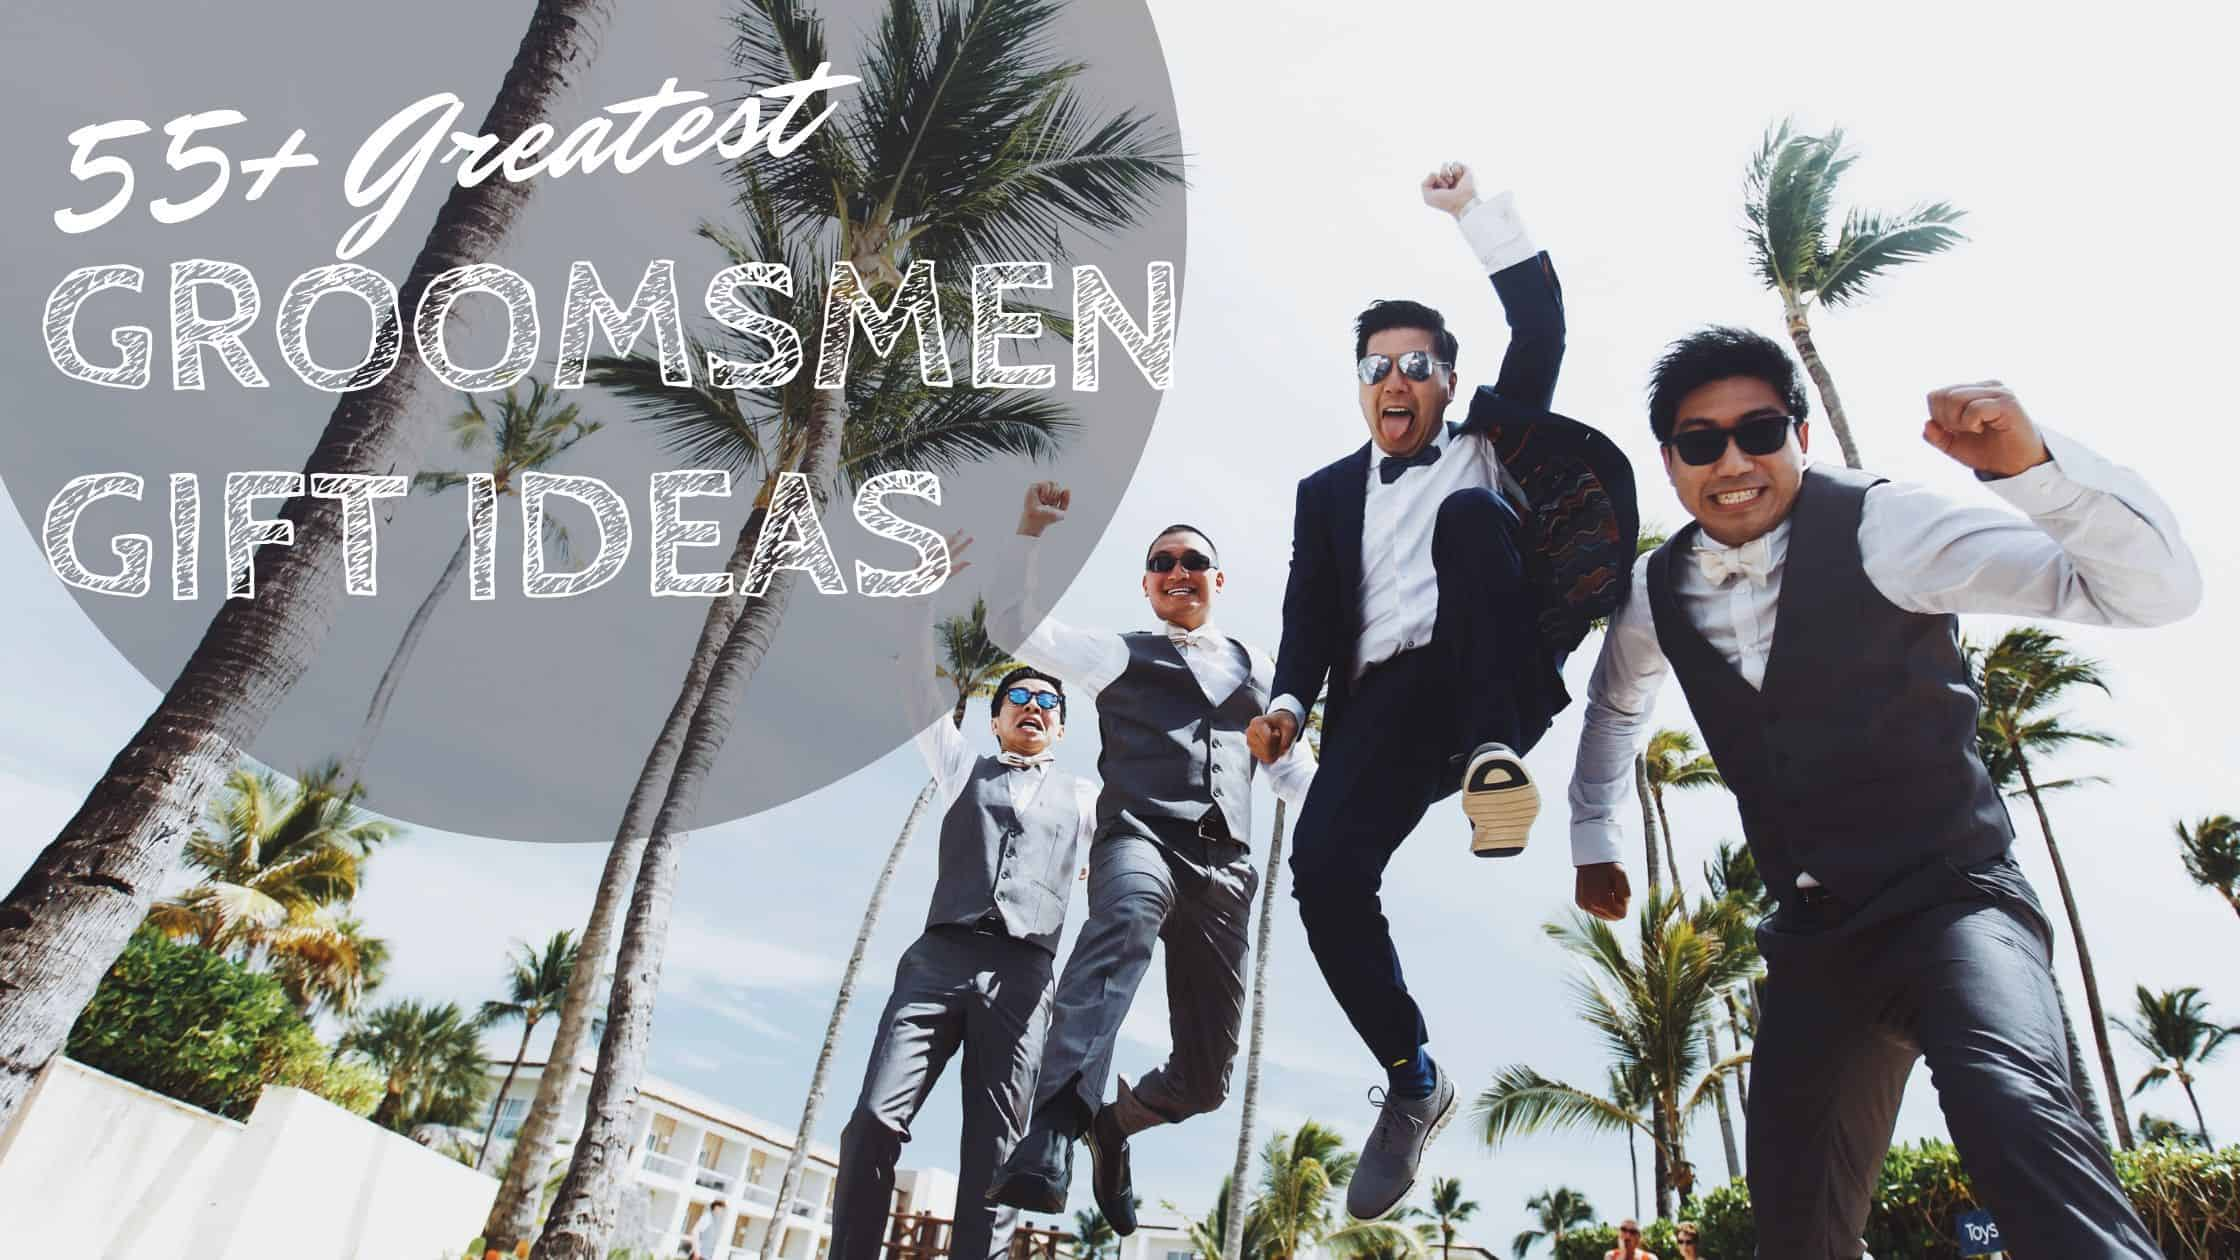 groom and groomsmen jumping up - groomsmen gift ideas